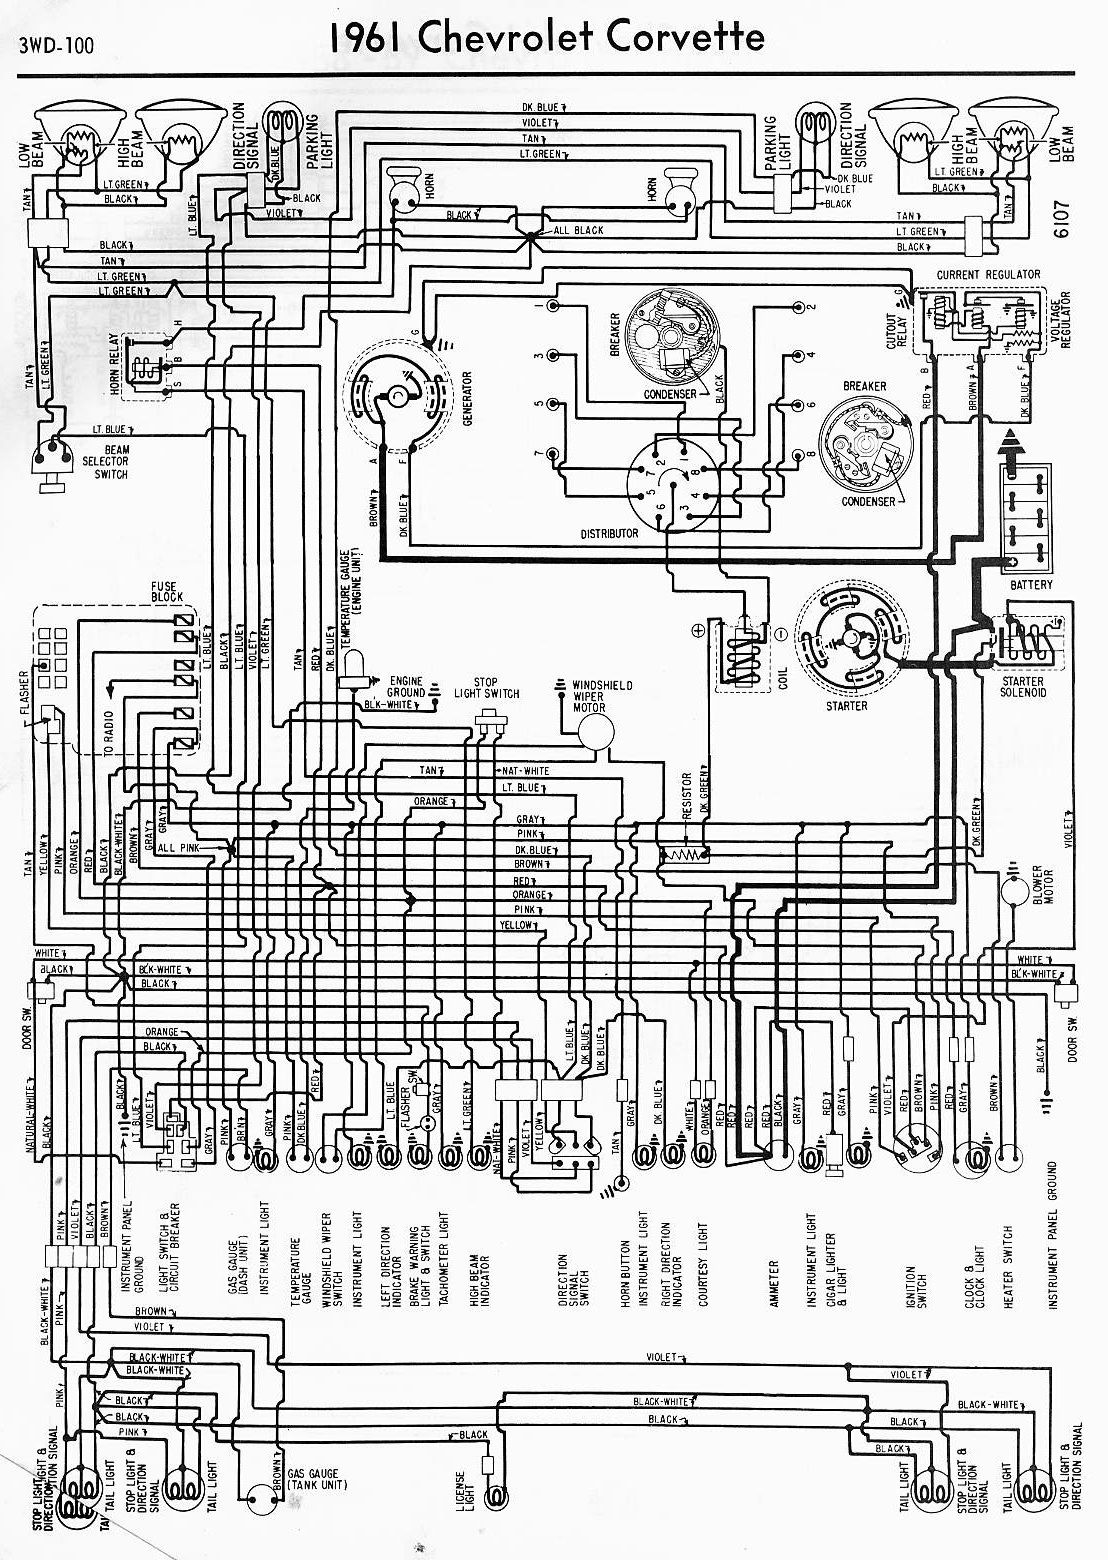 Corvette Wiring Diagram Everything Wiring Diagram